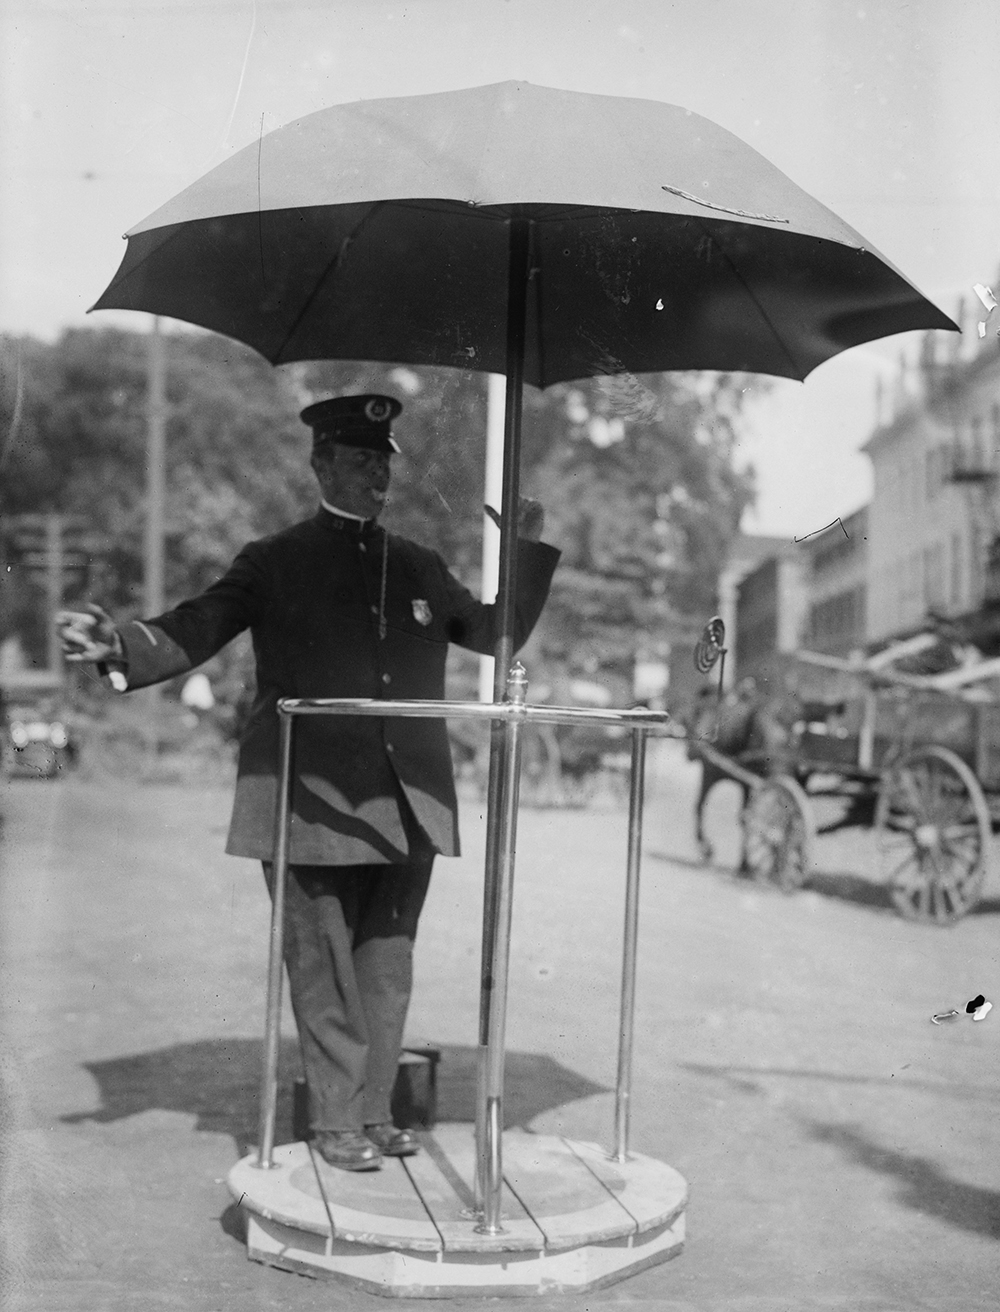 Traffic cop, Newport, Rhode Island, c. 1915. Photograph by Bain News Service. Library of Congress, Prints and Photographs Division.